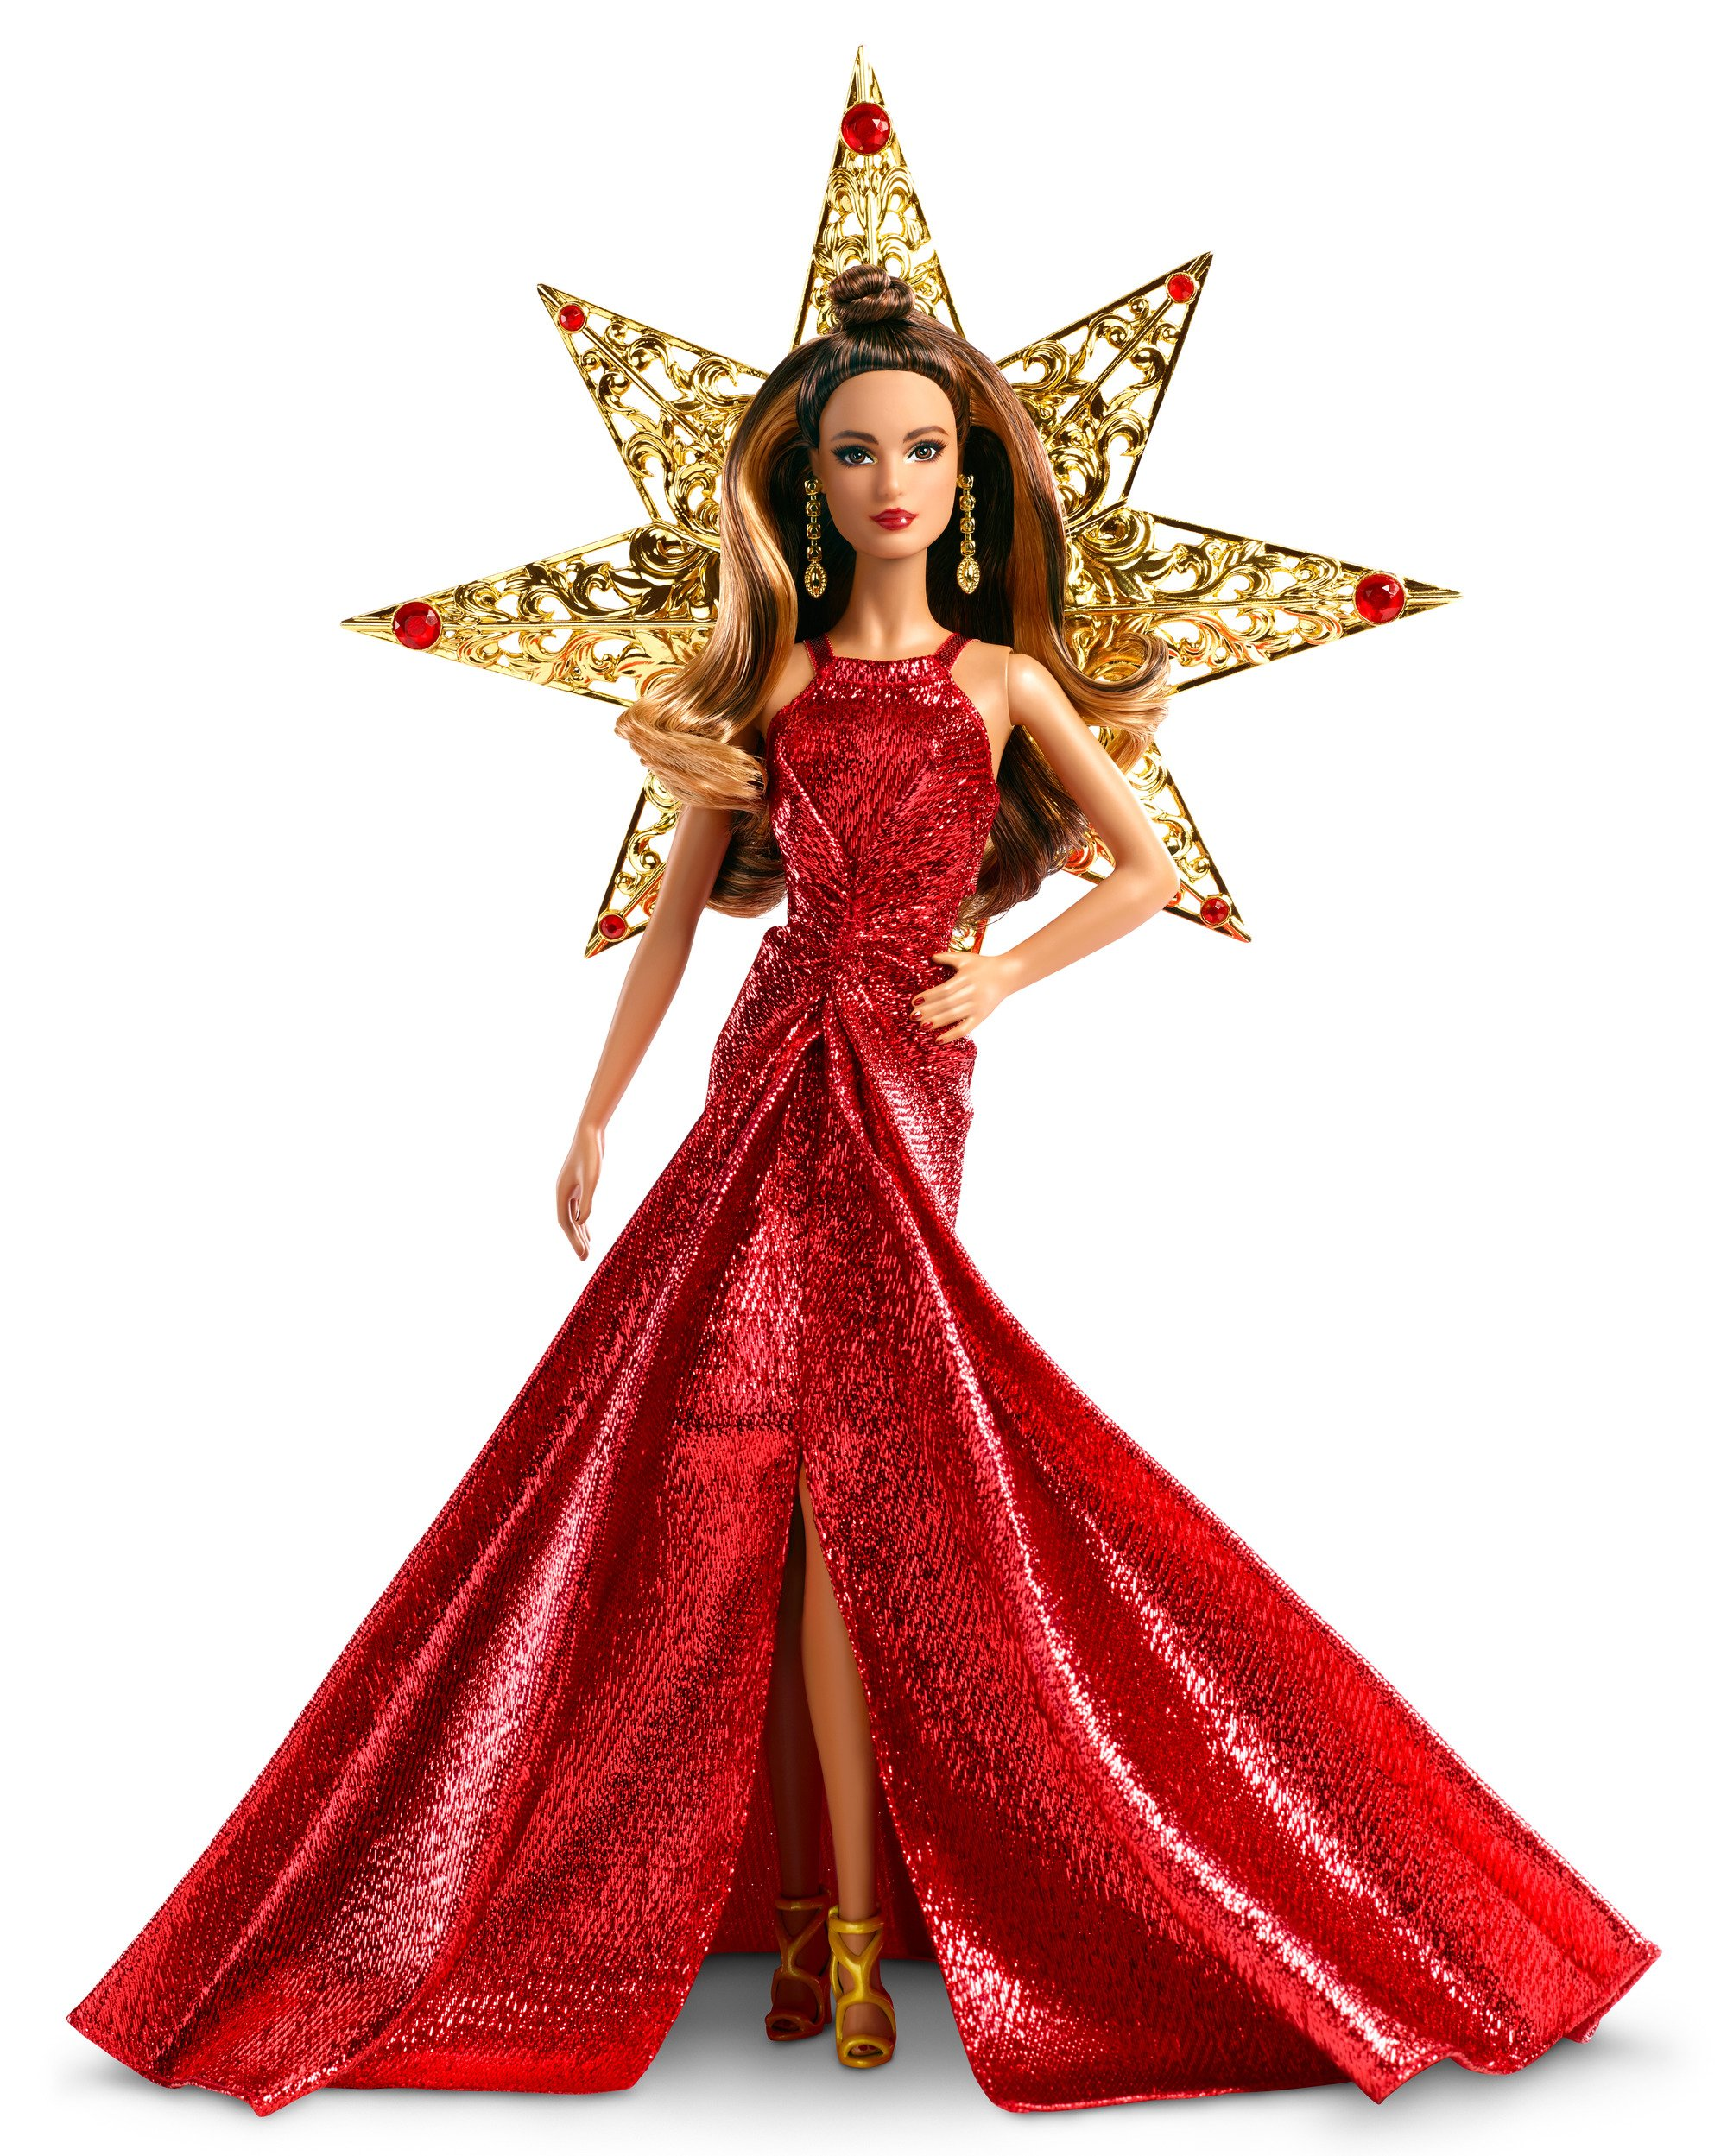 2017 Holiday Barbie Doll | Barbie Wiki | FANDOM powered by Wikia